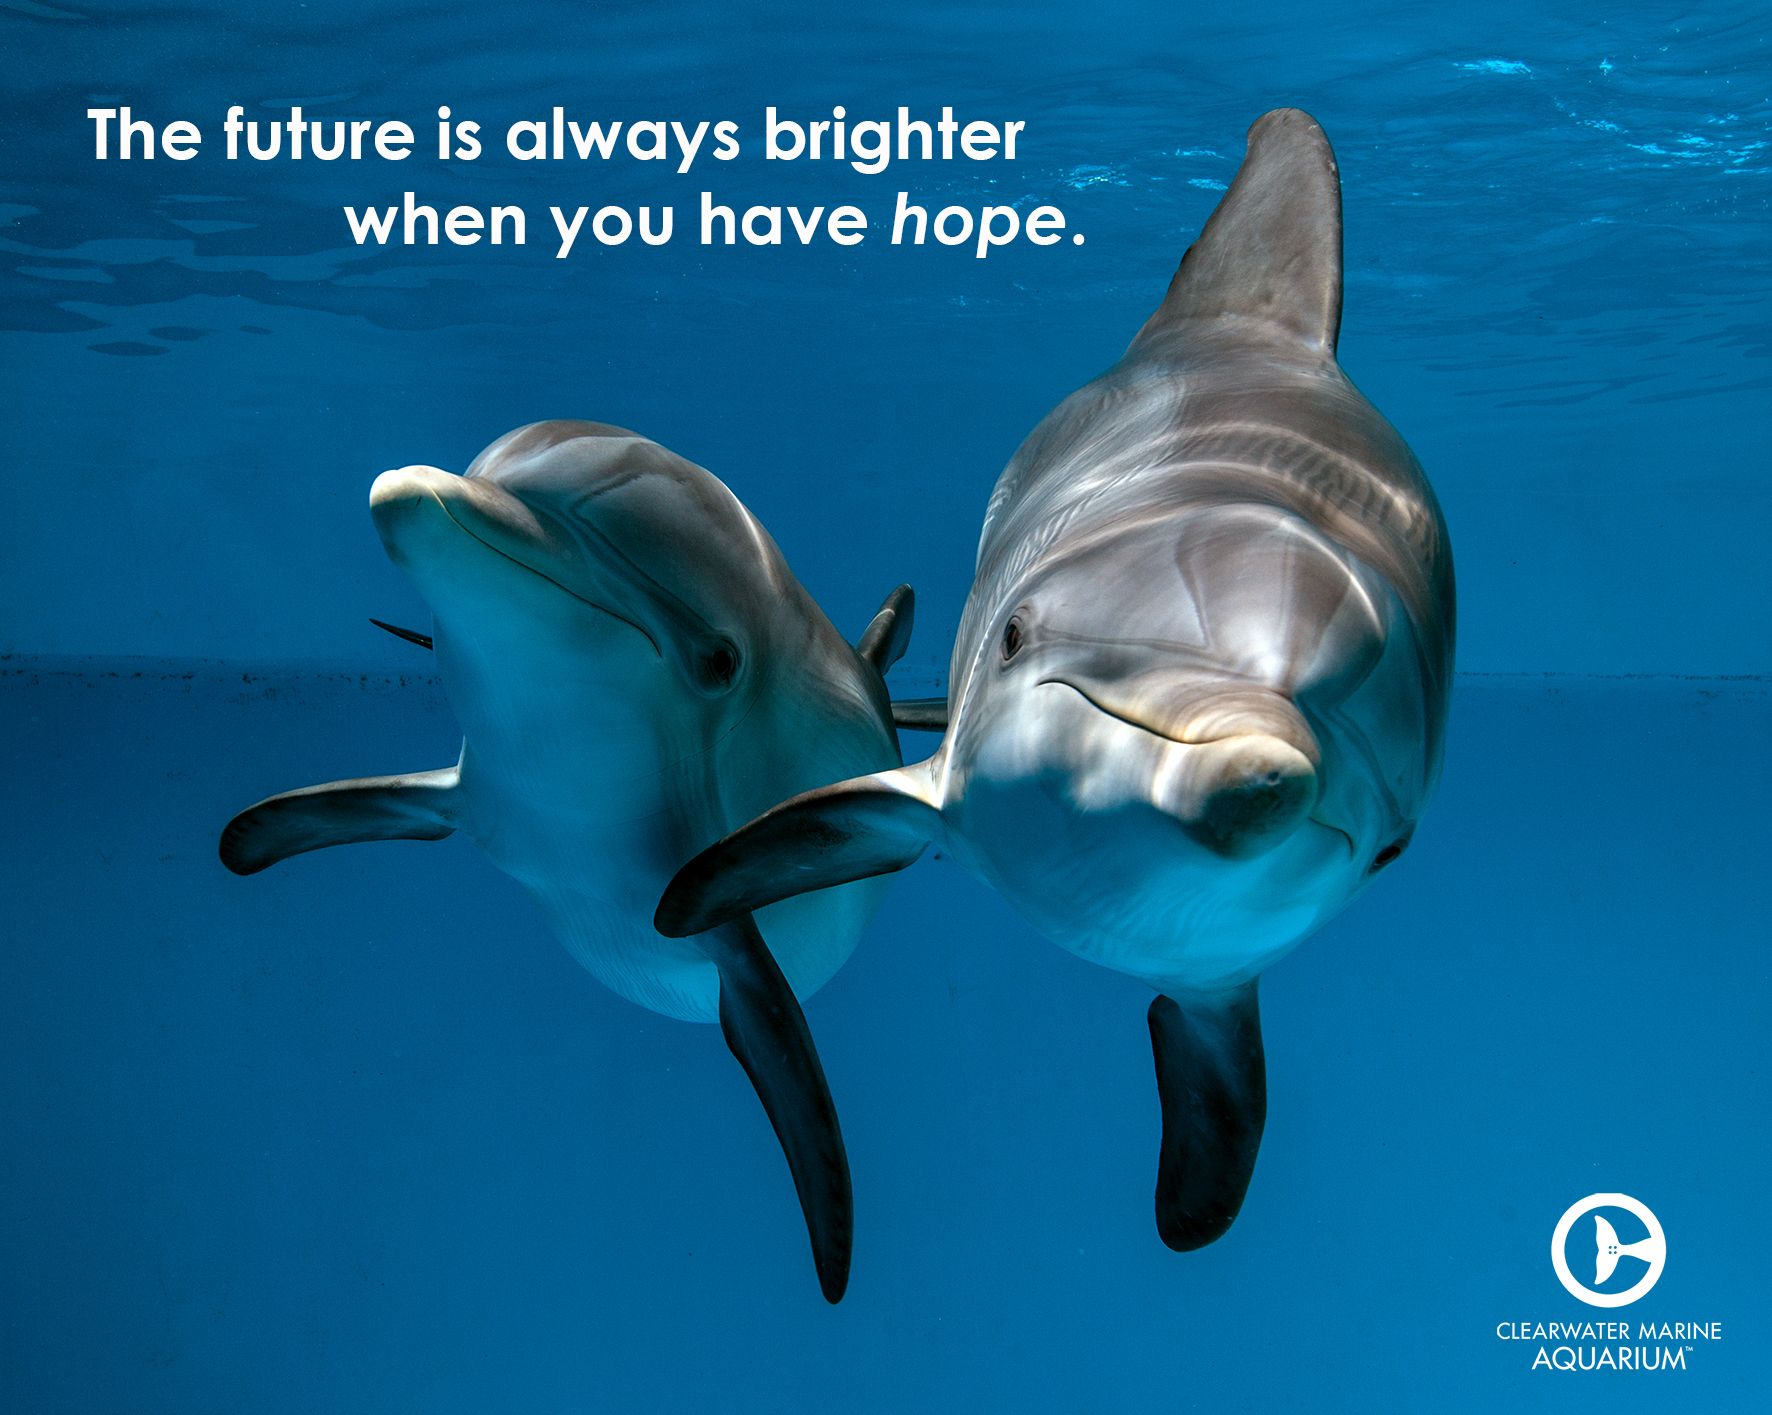 Fish aquarium quotes -  The Future Is Always Brighter When You Have Hope